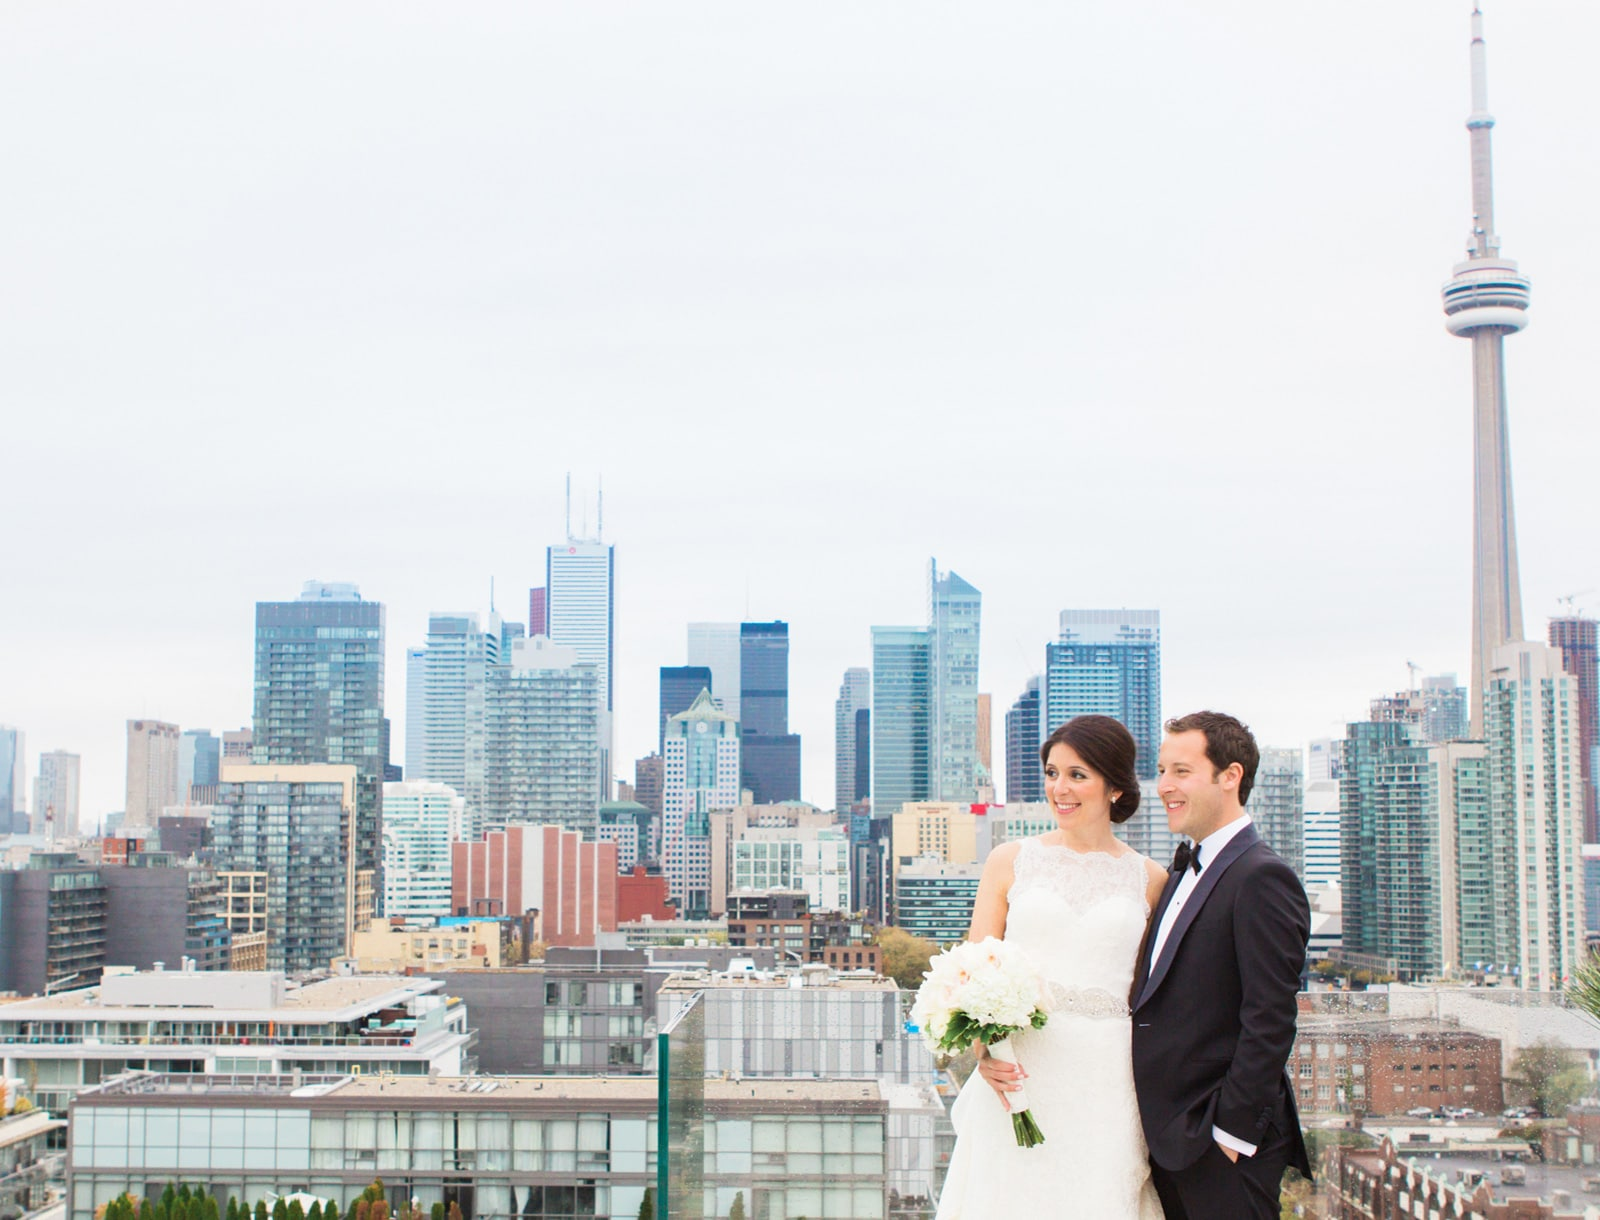 Toronto Thompson Hotel & Beth Emeth Wedding: Jamie & Michael